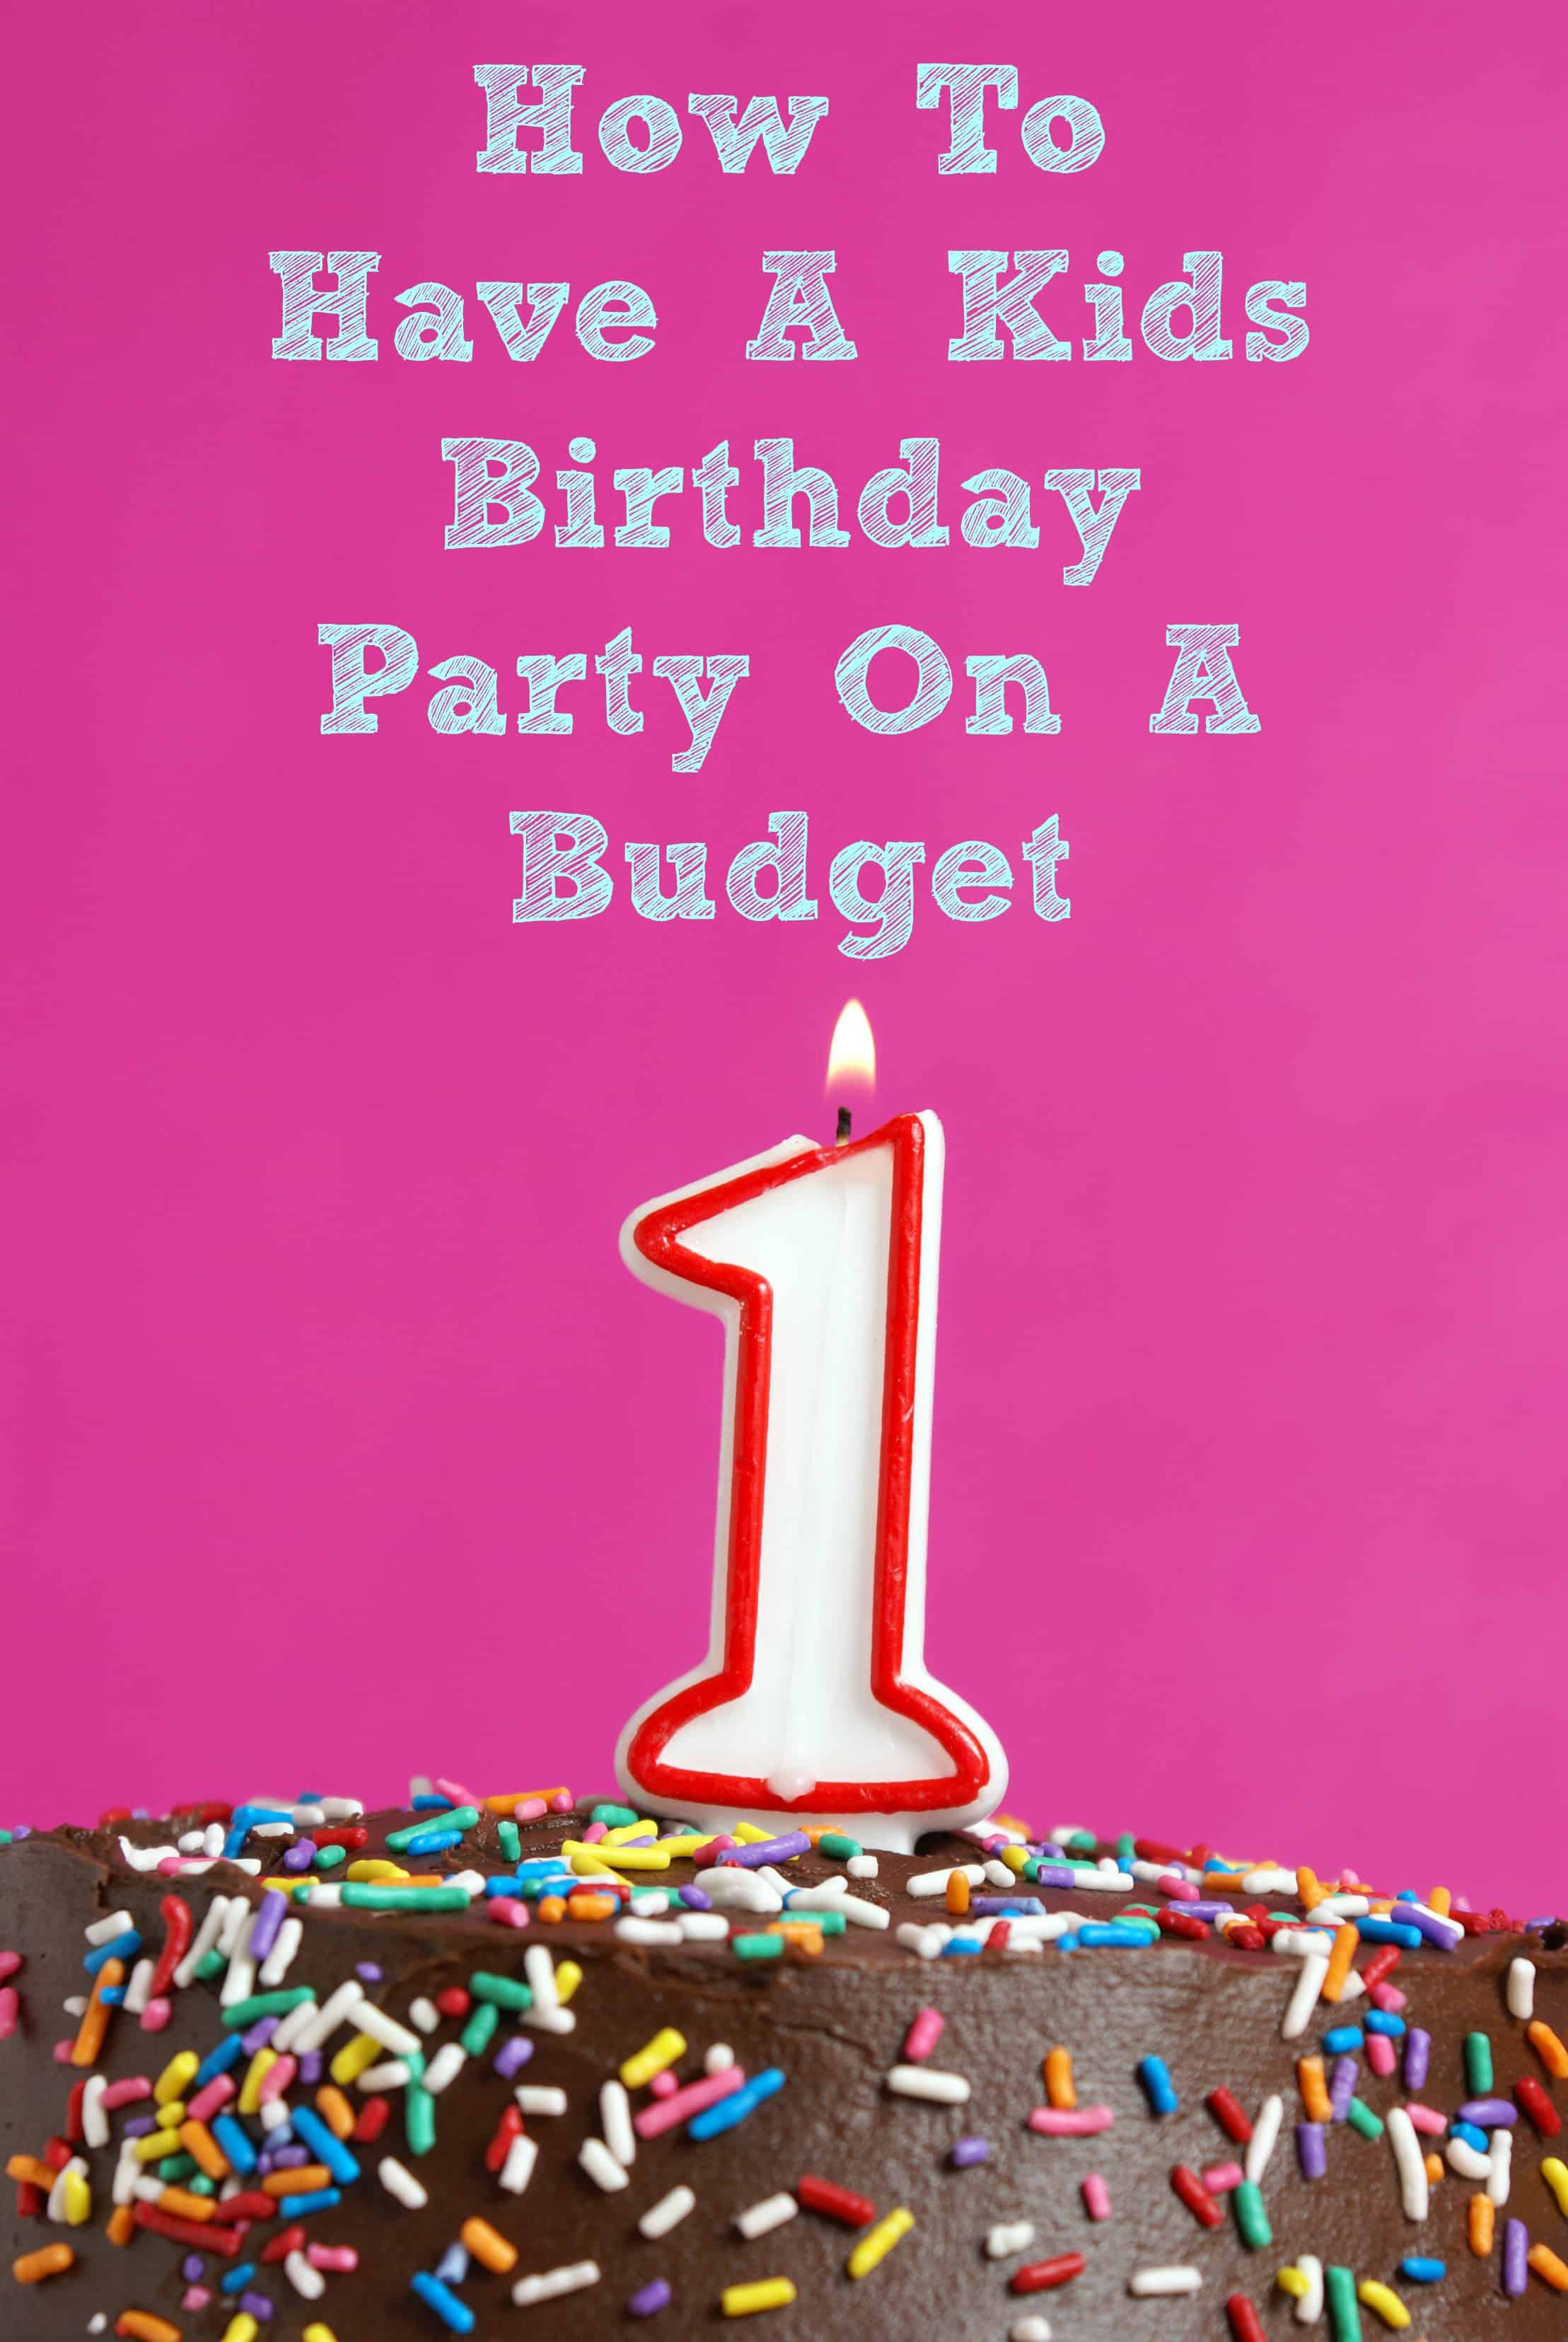 Looking to host your child's birthday party, but need to stick to a budget? Here are our tips!